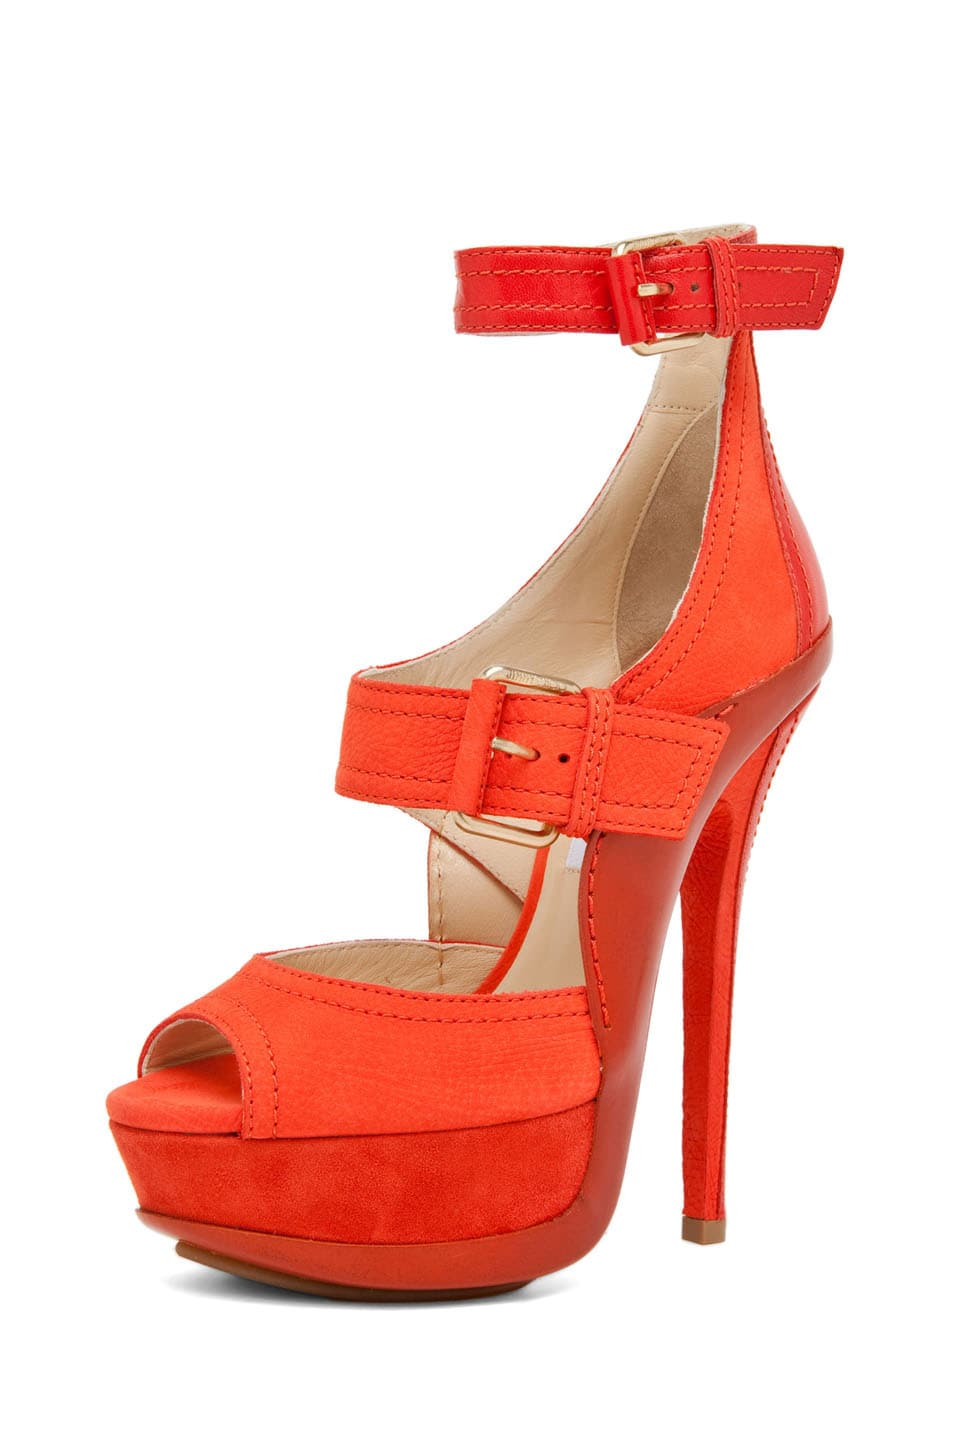 Image 2 of Jimmy Choo Letitia Platform Sandal in Coral